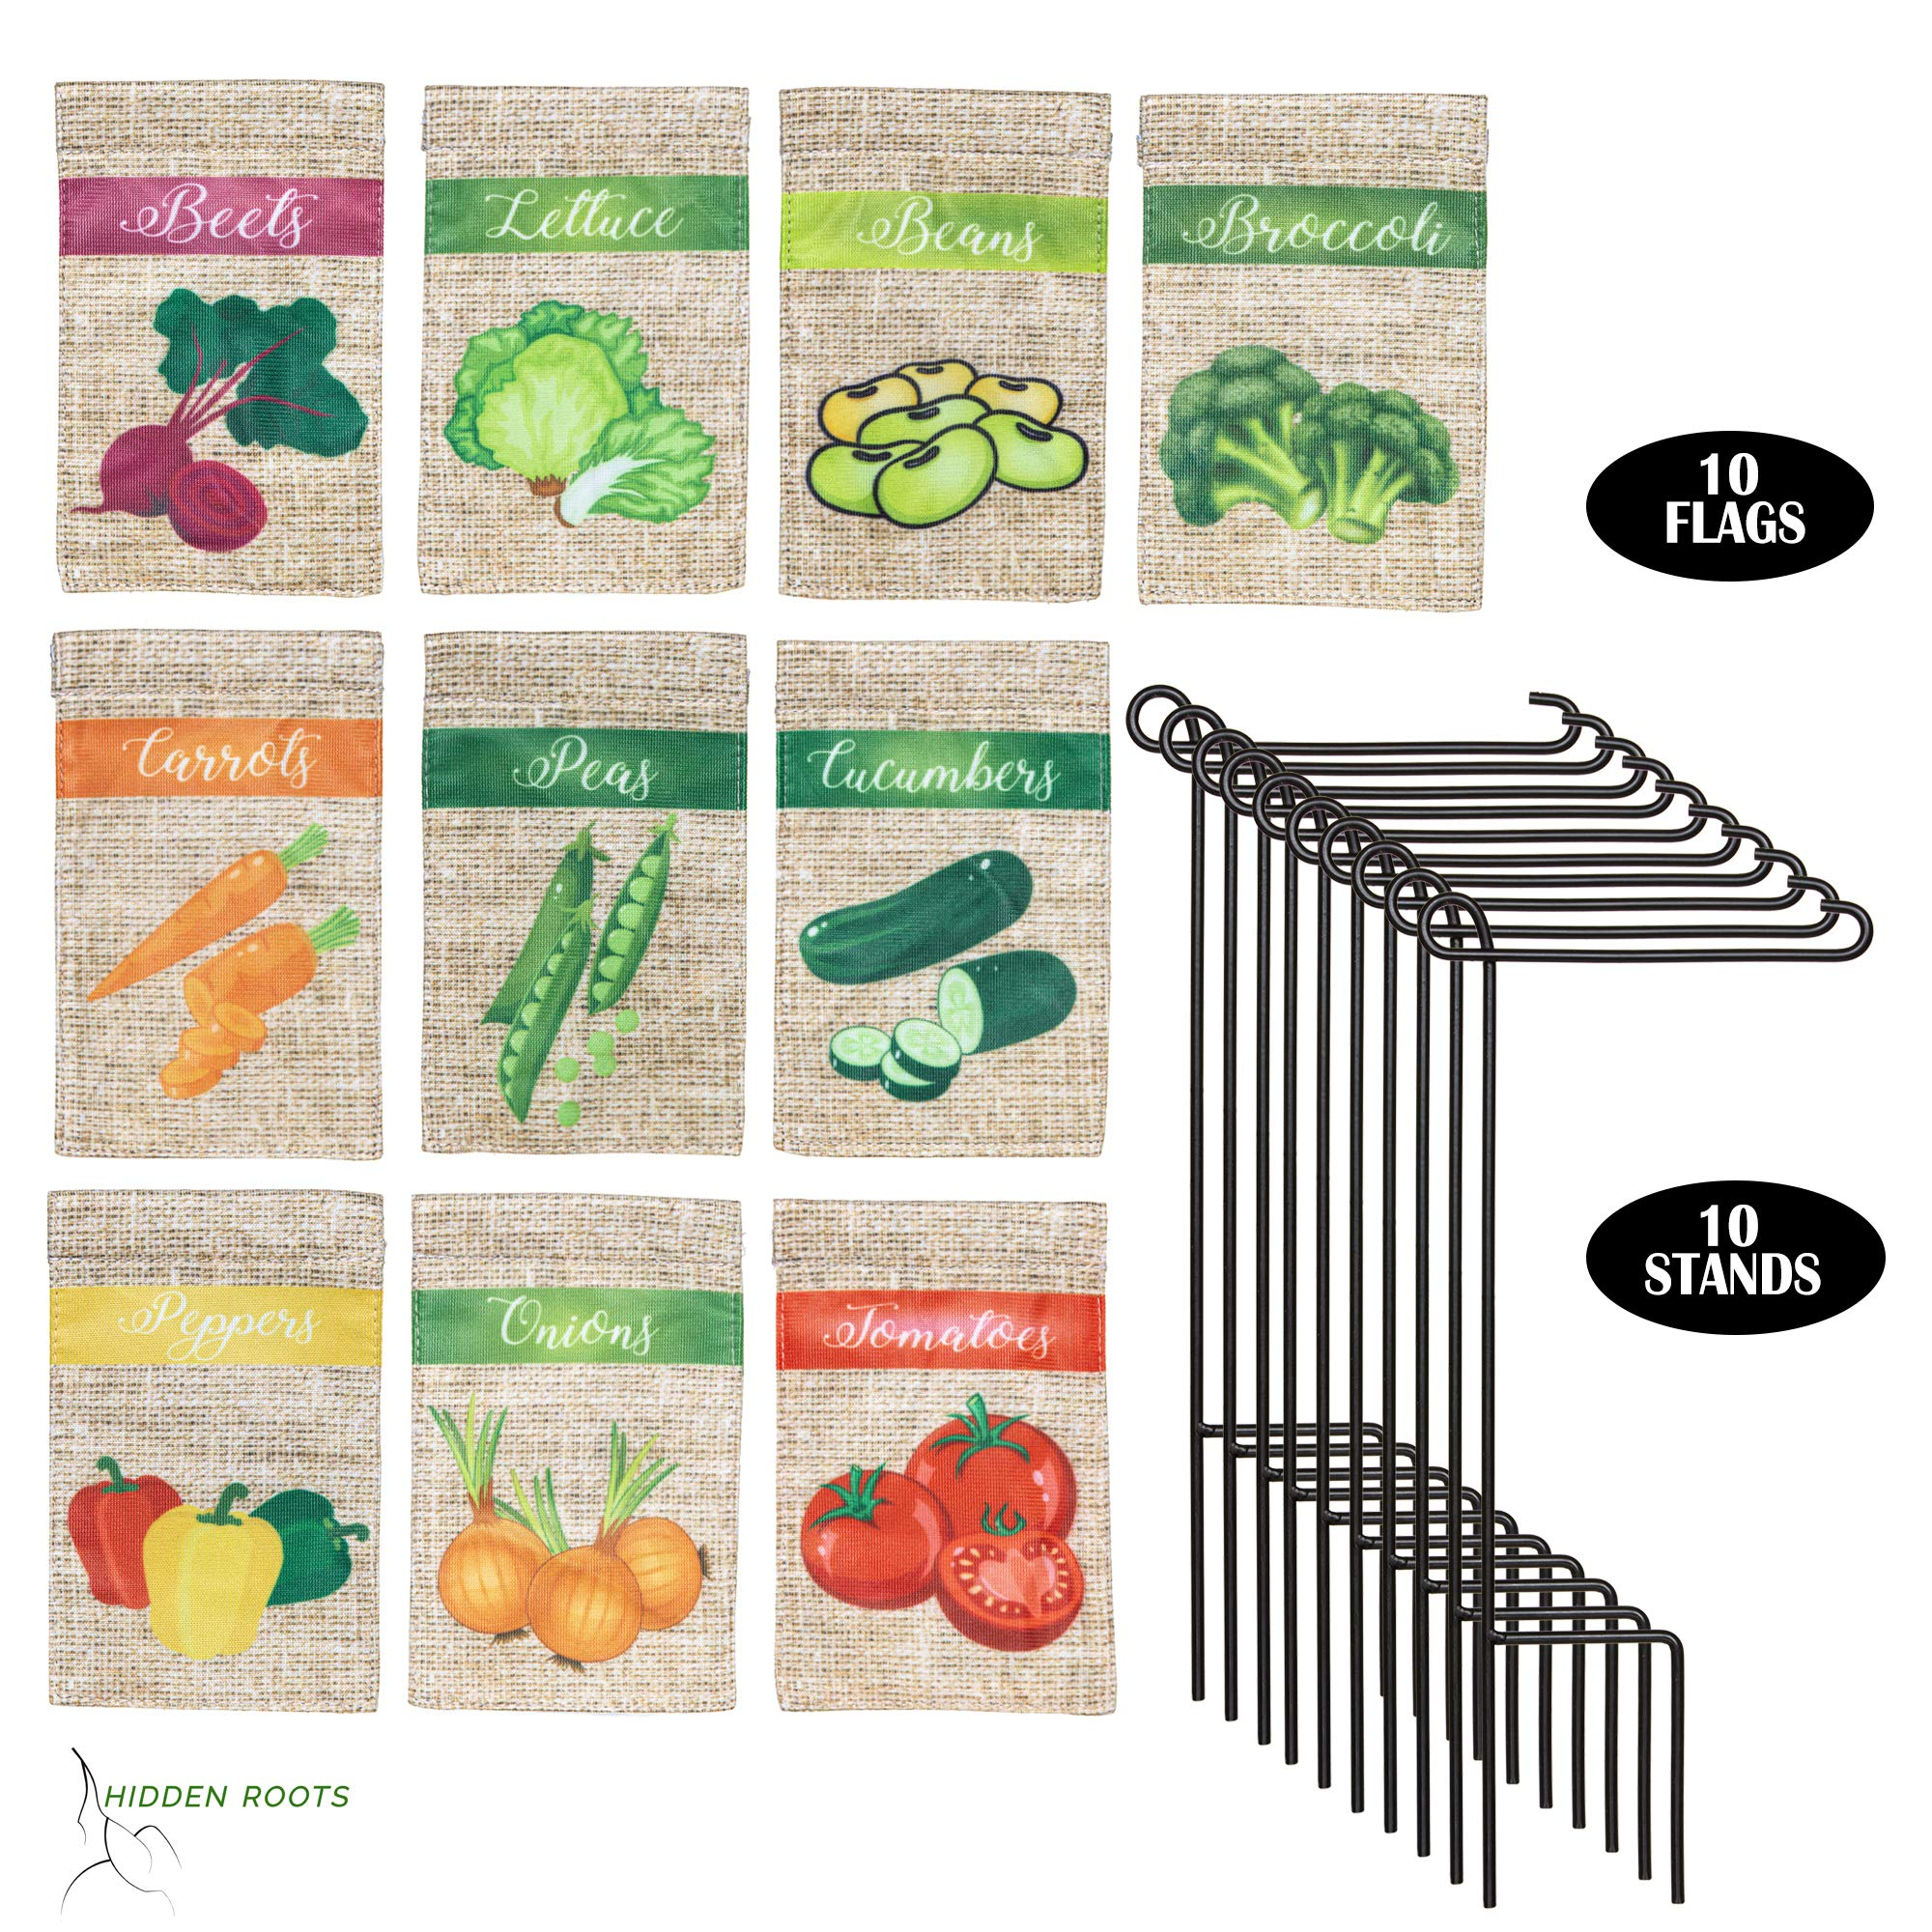 HIDDEN ROOTS - Miniature Garden Flags for Plant Labeling - 10 Pack Assortment of 3.5 x 5 inch Specially Designed Small Vegetable Identifiers - Double Sided - Premium Quality - Durable Materials (10) by Hidden Roots